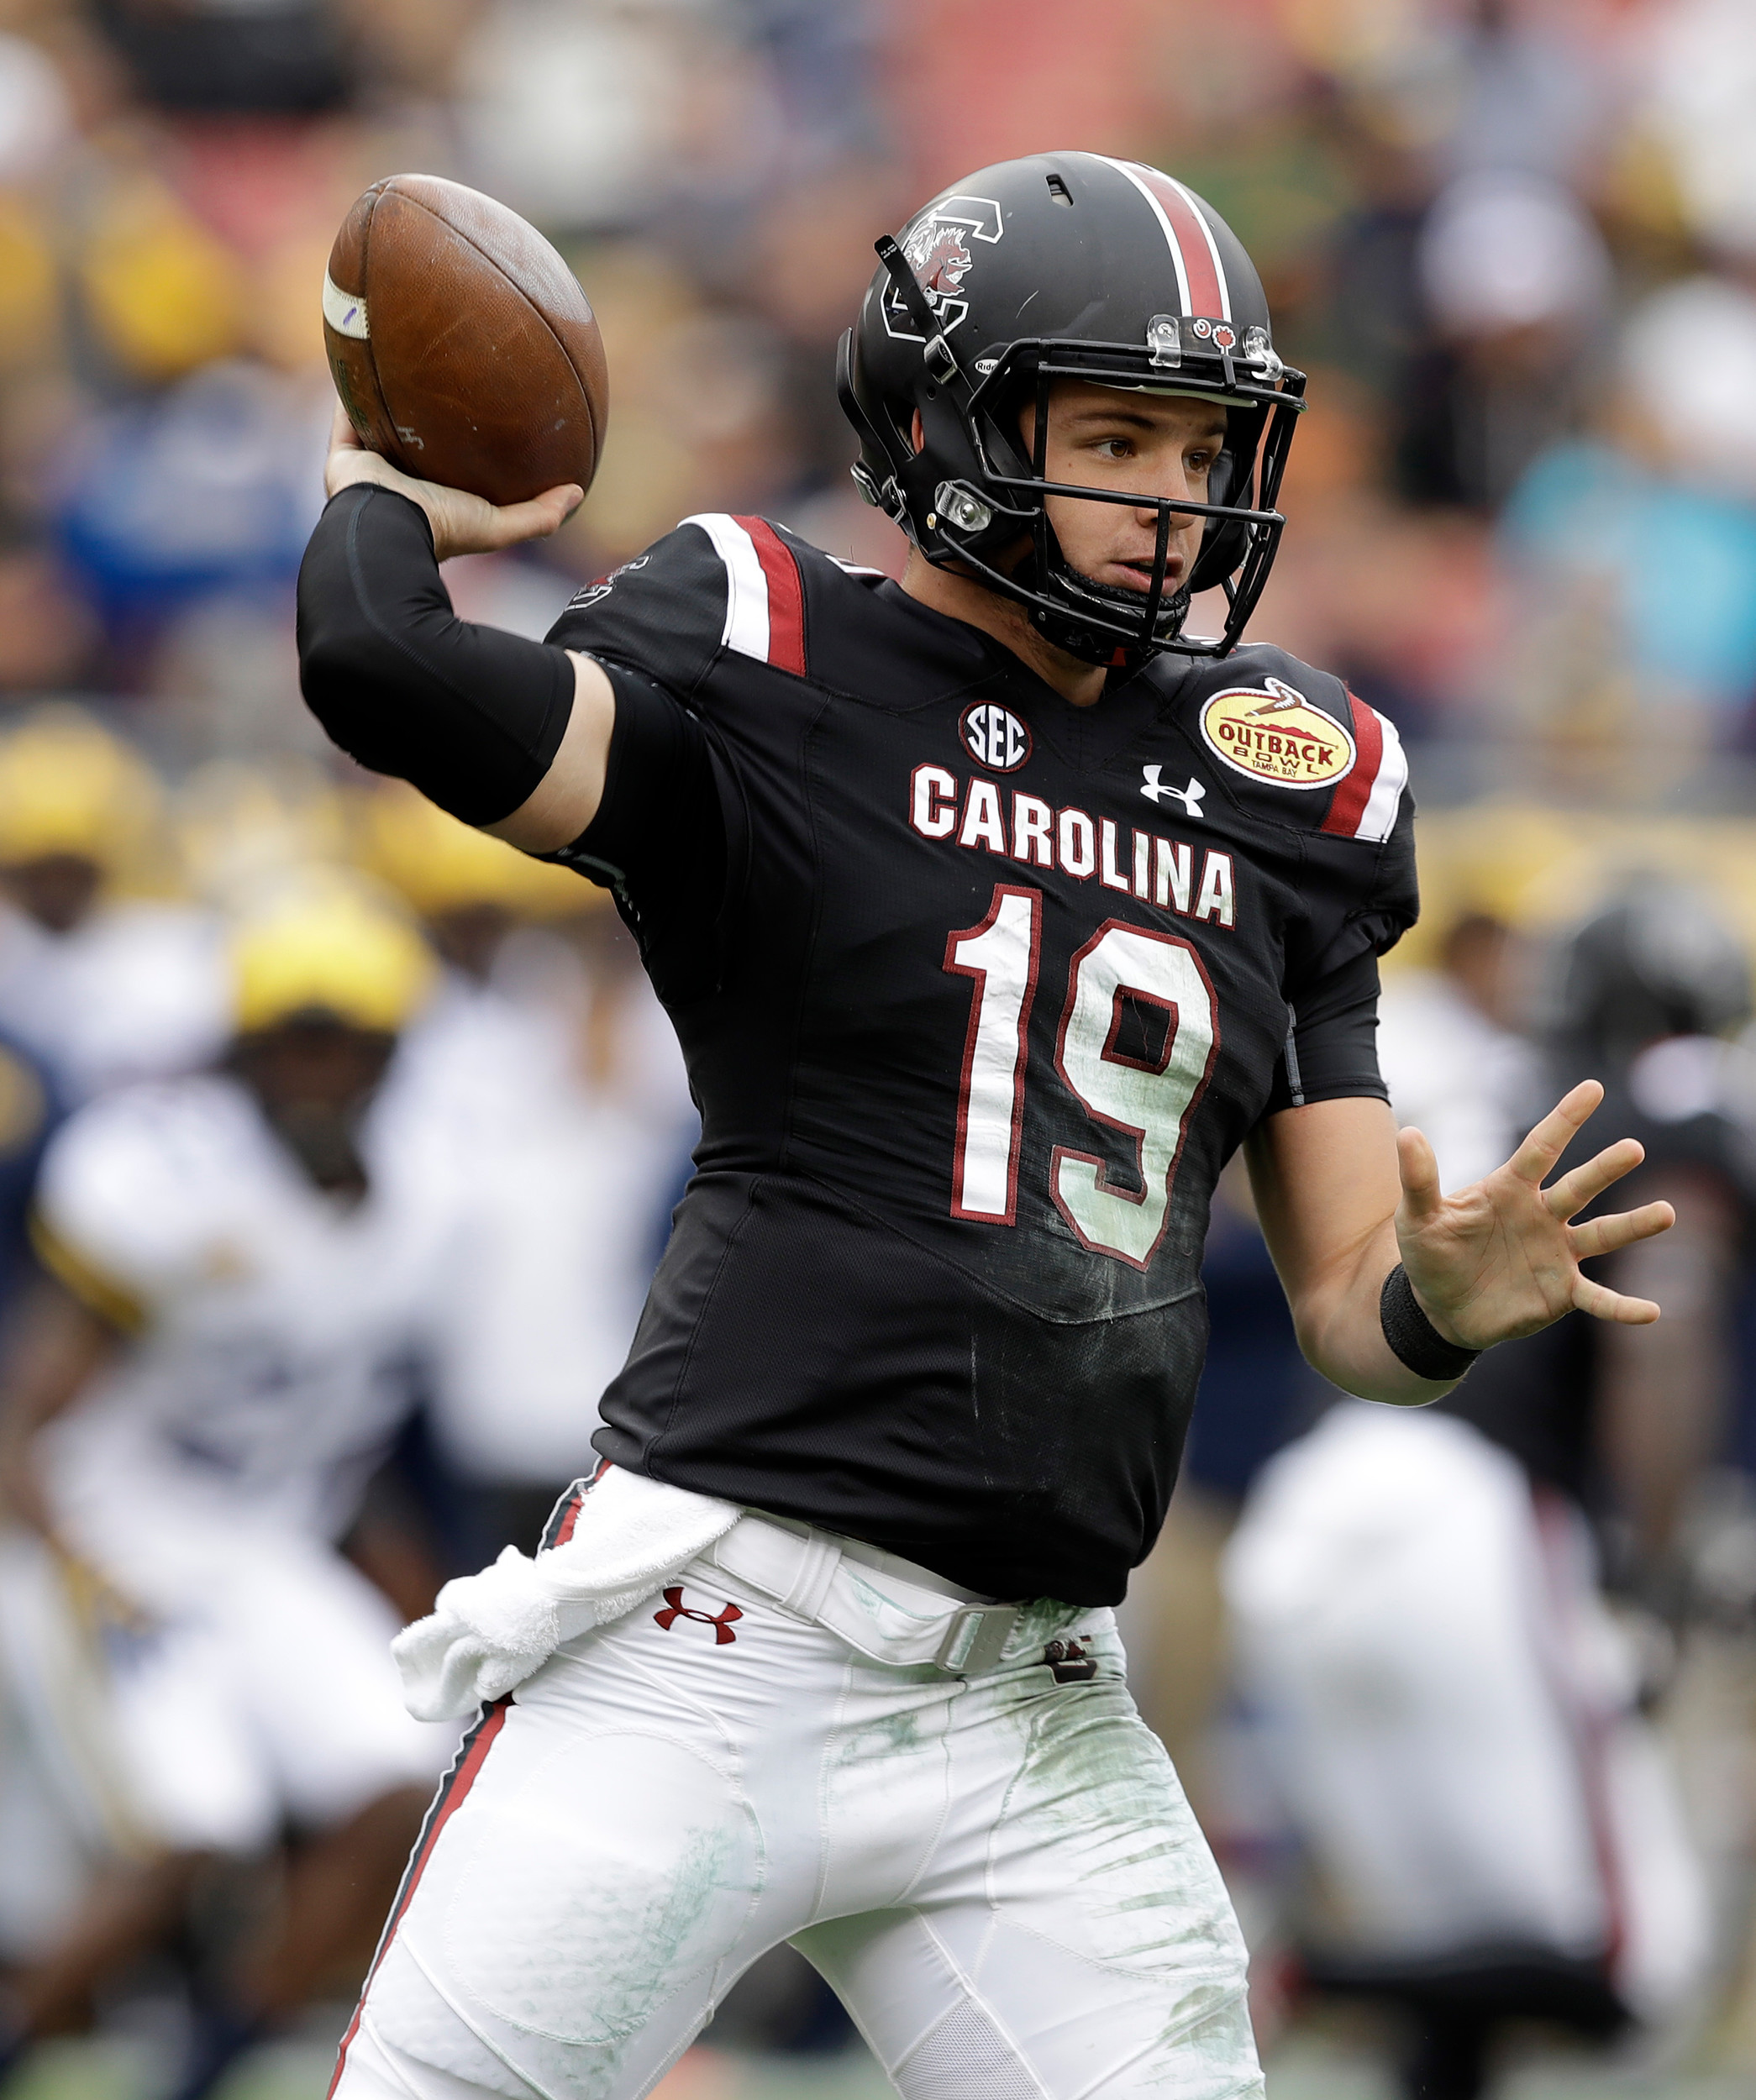 THE ASSOCIATED PRESSSouth Carolina quarterback Jake Bentley throws a pass during the Gamecocks' 26-19 victory over Michi gan in the Outback Bowl on Monday in Tampa, Fla. USC rallied from a 19-3, third-quarter deficit to pick up the victory.